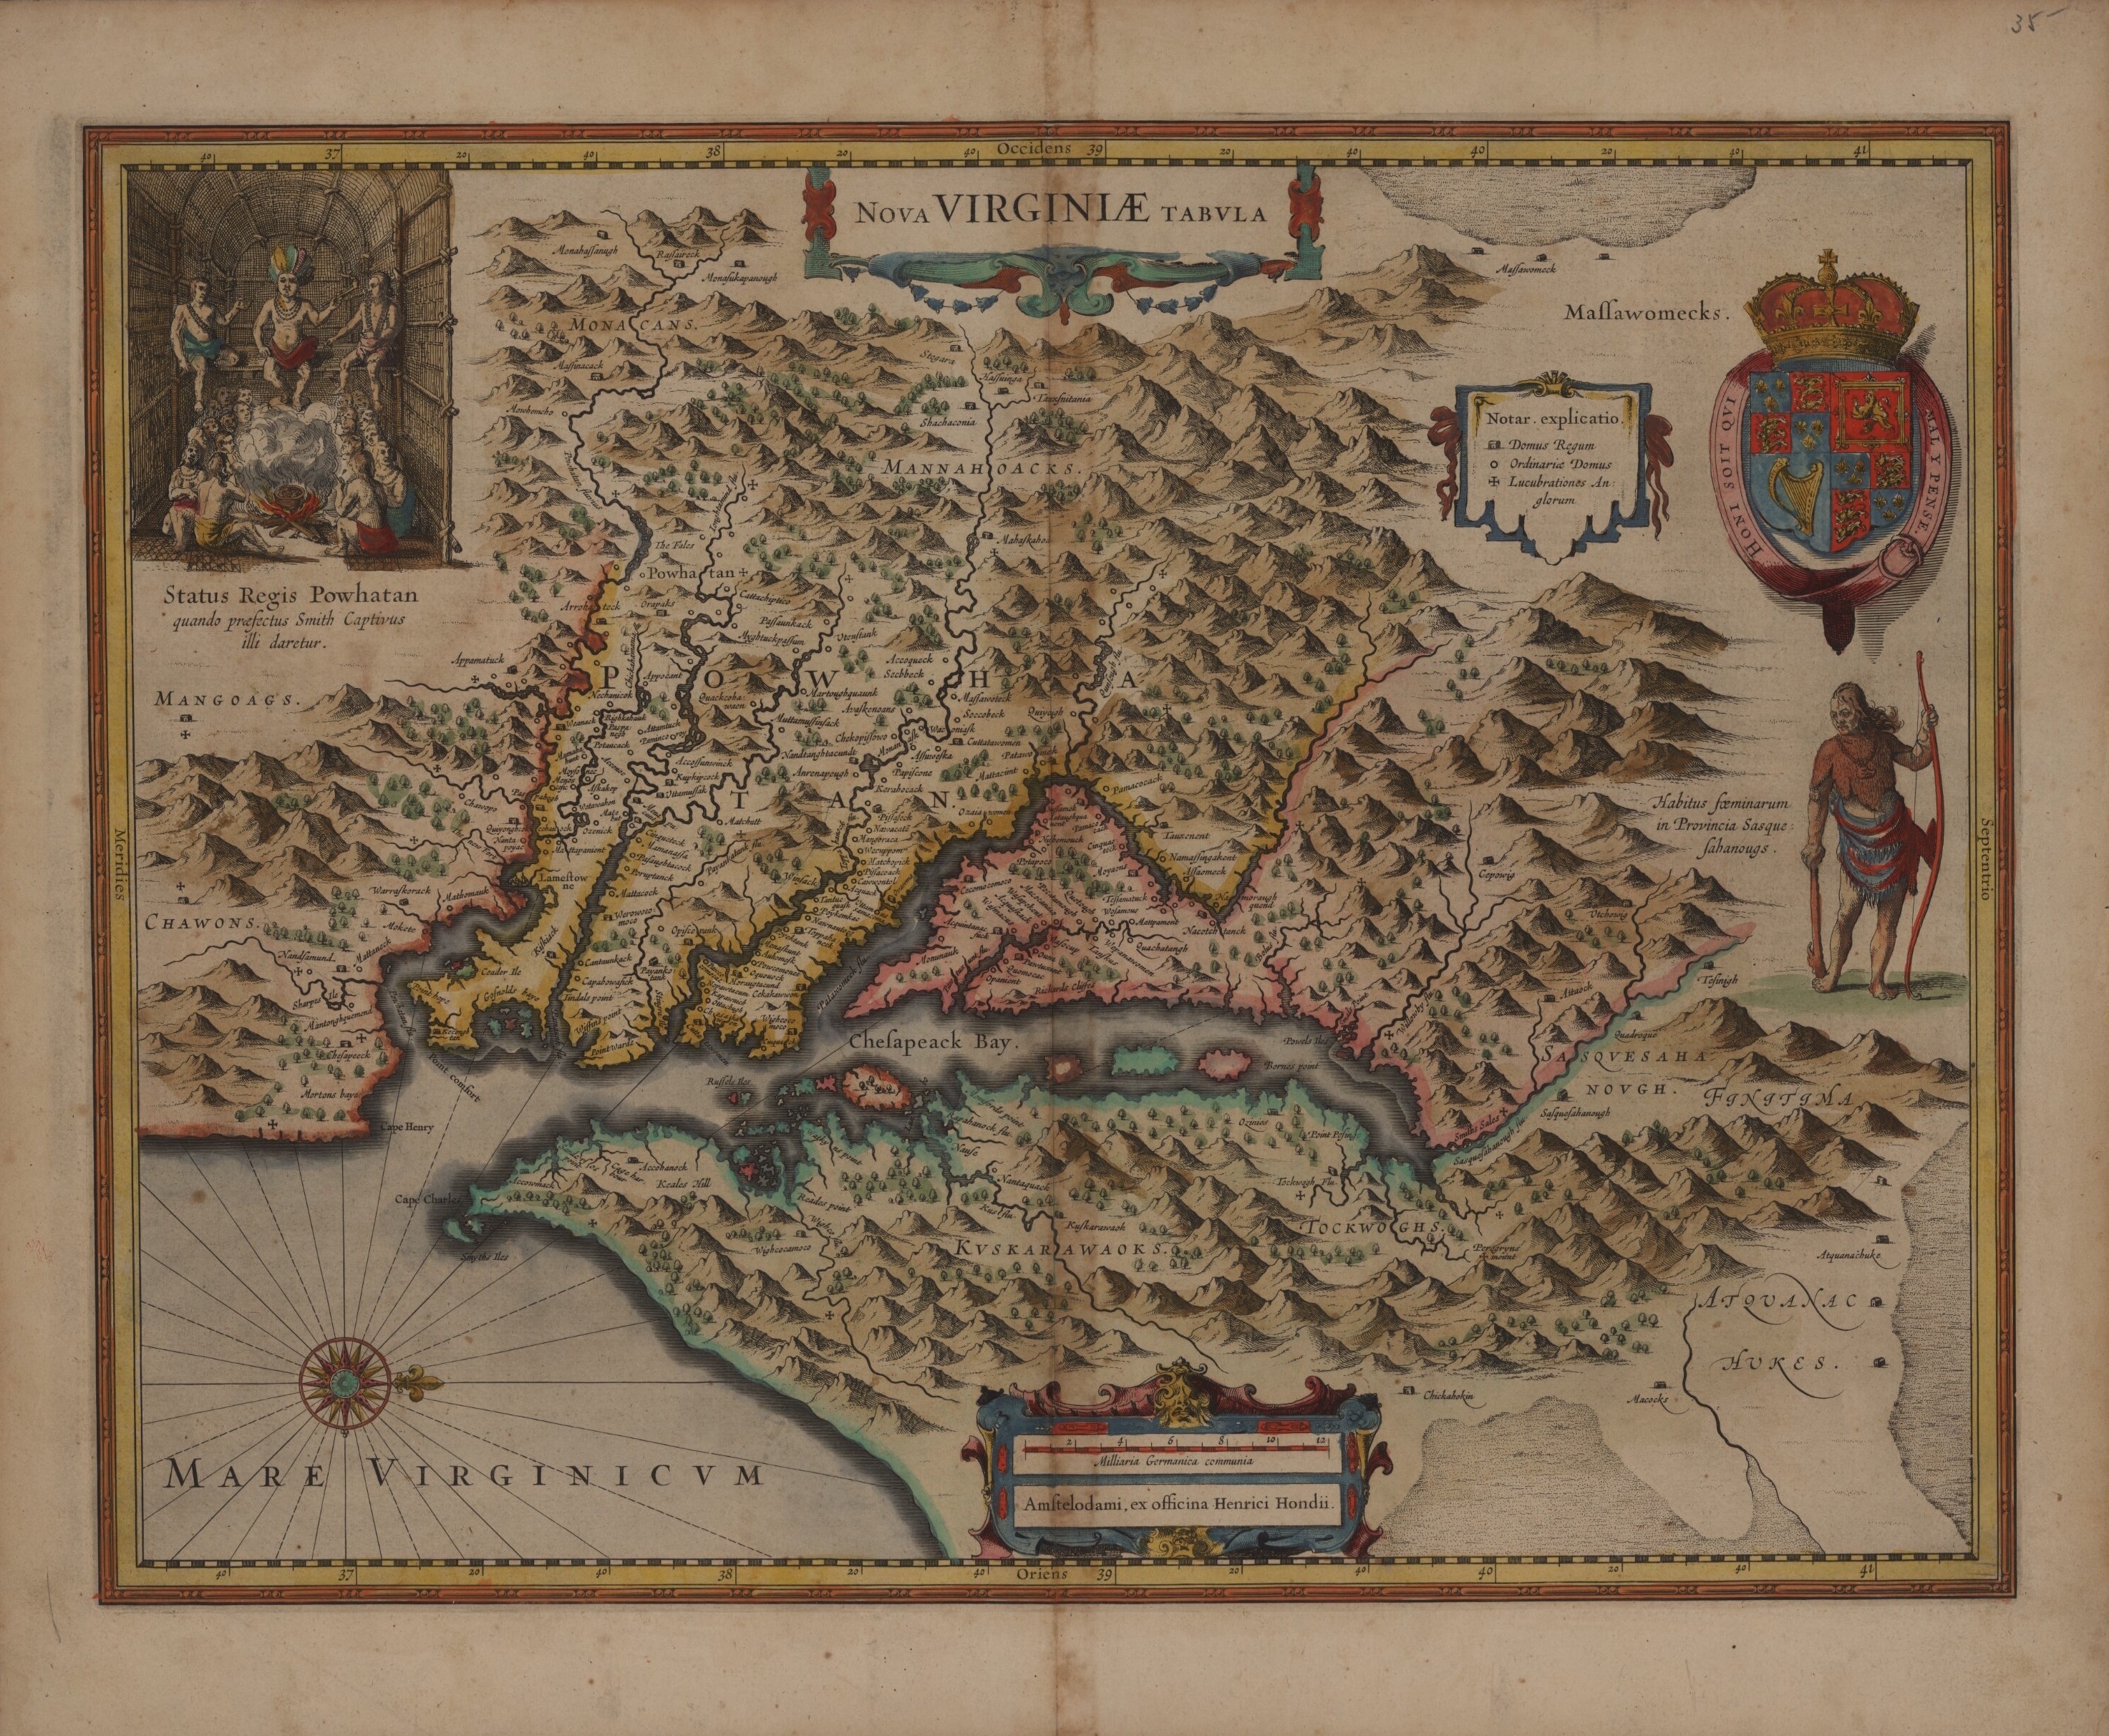 A New Map of Virginia with images of Powhatan 1633 or 1636 DPLA